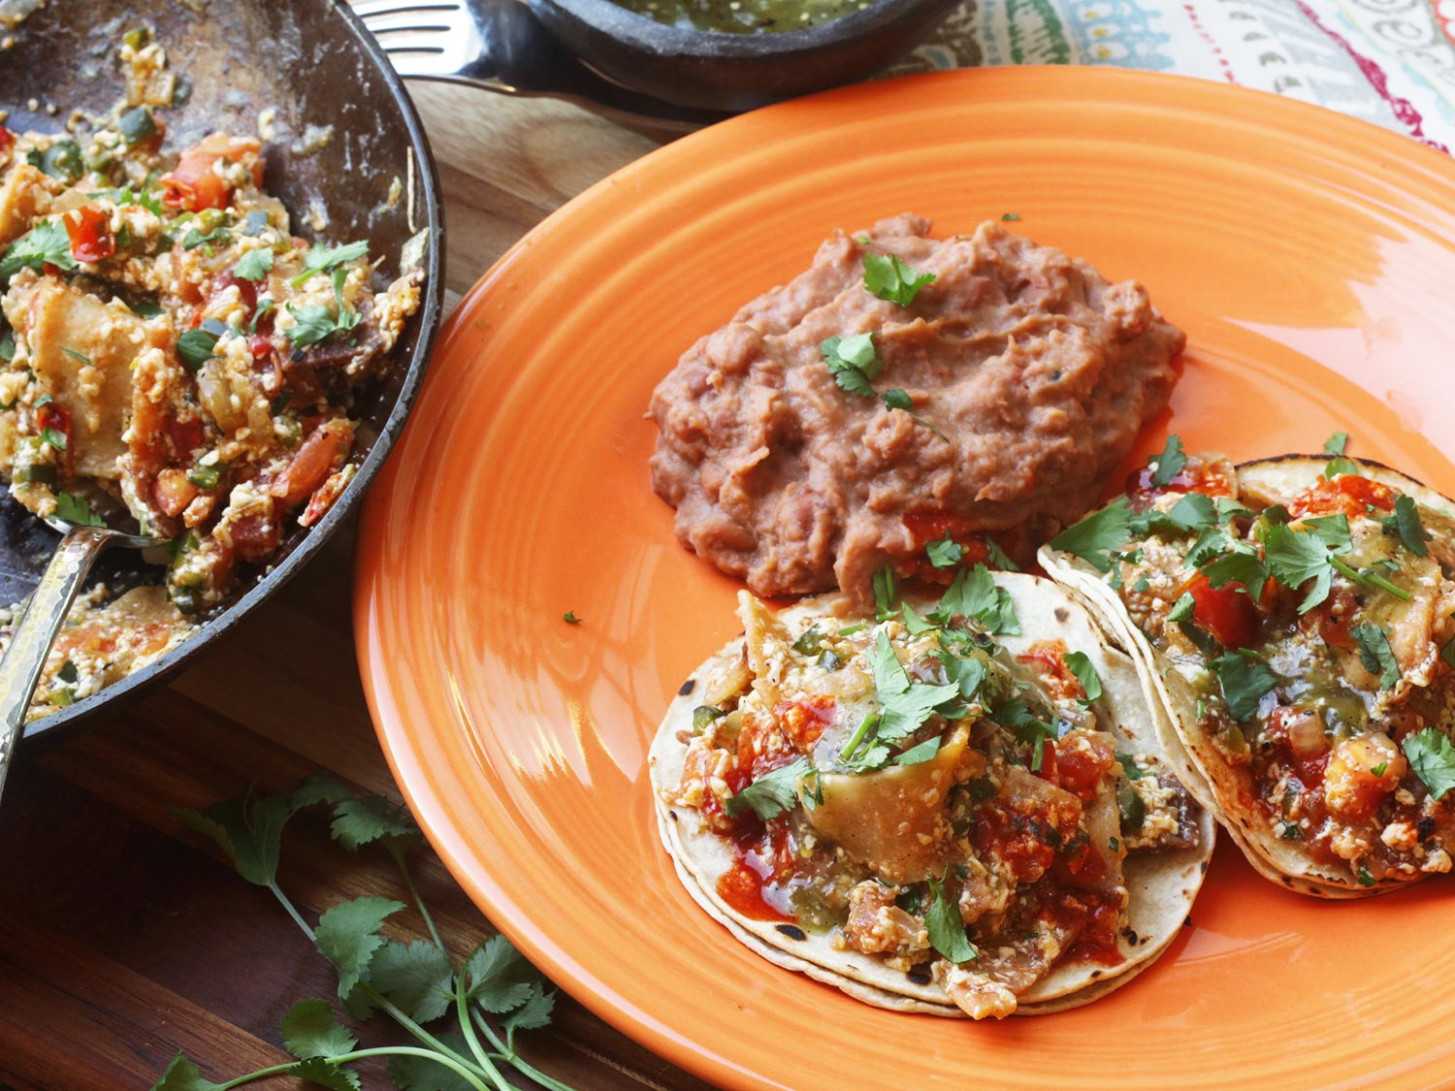 Meet Vigas, the Vegan Migas That Will Become Your Favorite ..